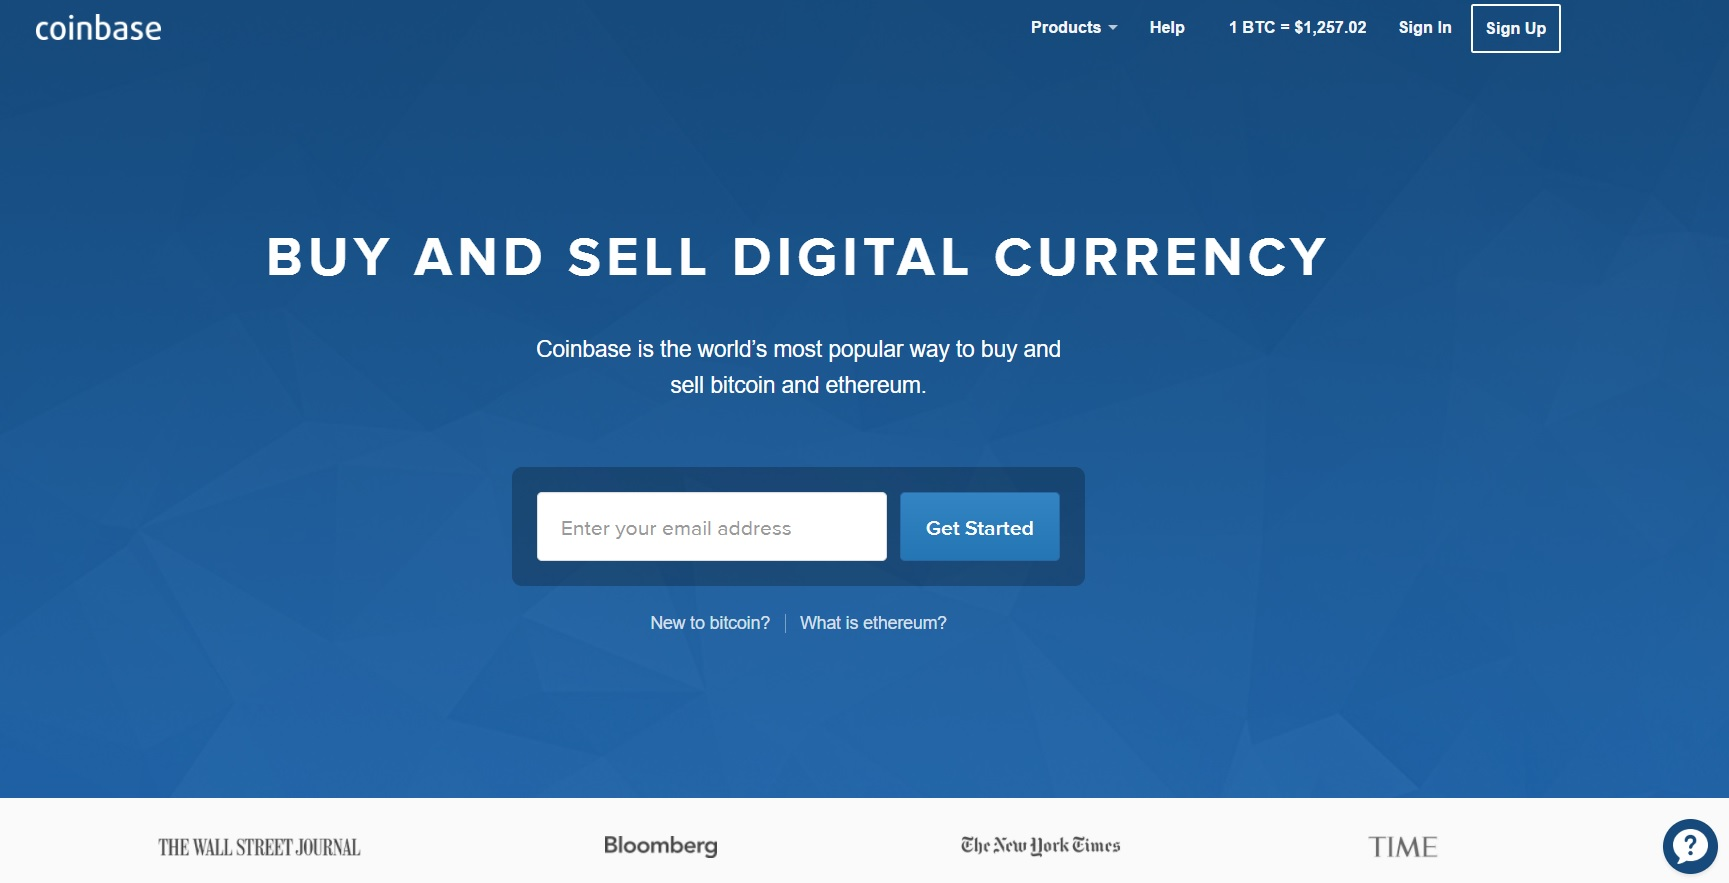 Coinbase.com Bitcoin Exchange